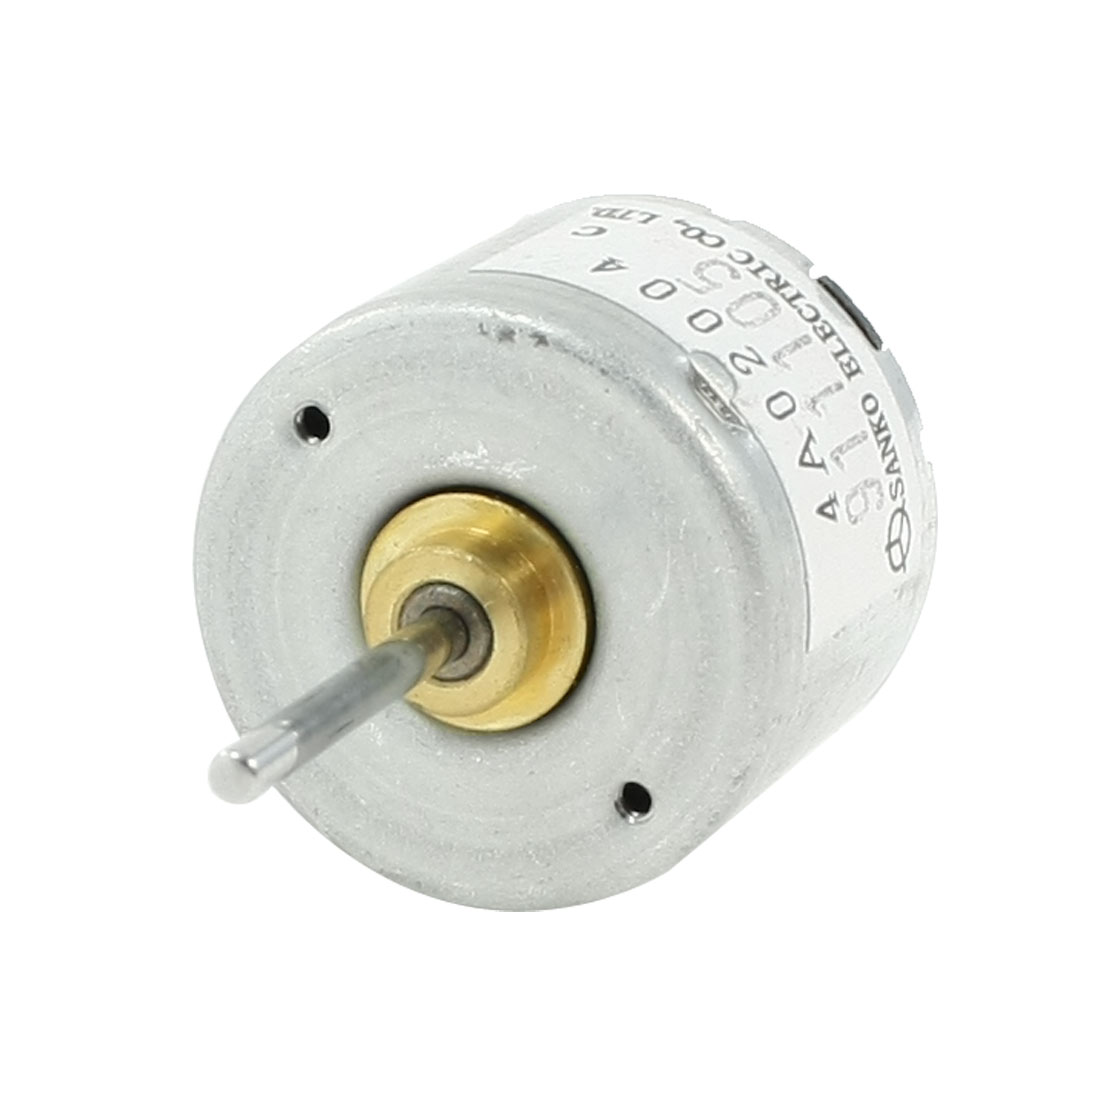 6400RPM 6V 0.02A High Torque Cylinder Electric Mini DC Motor